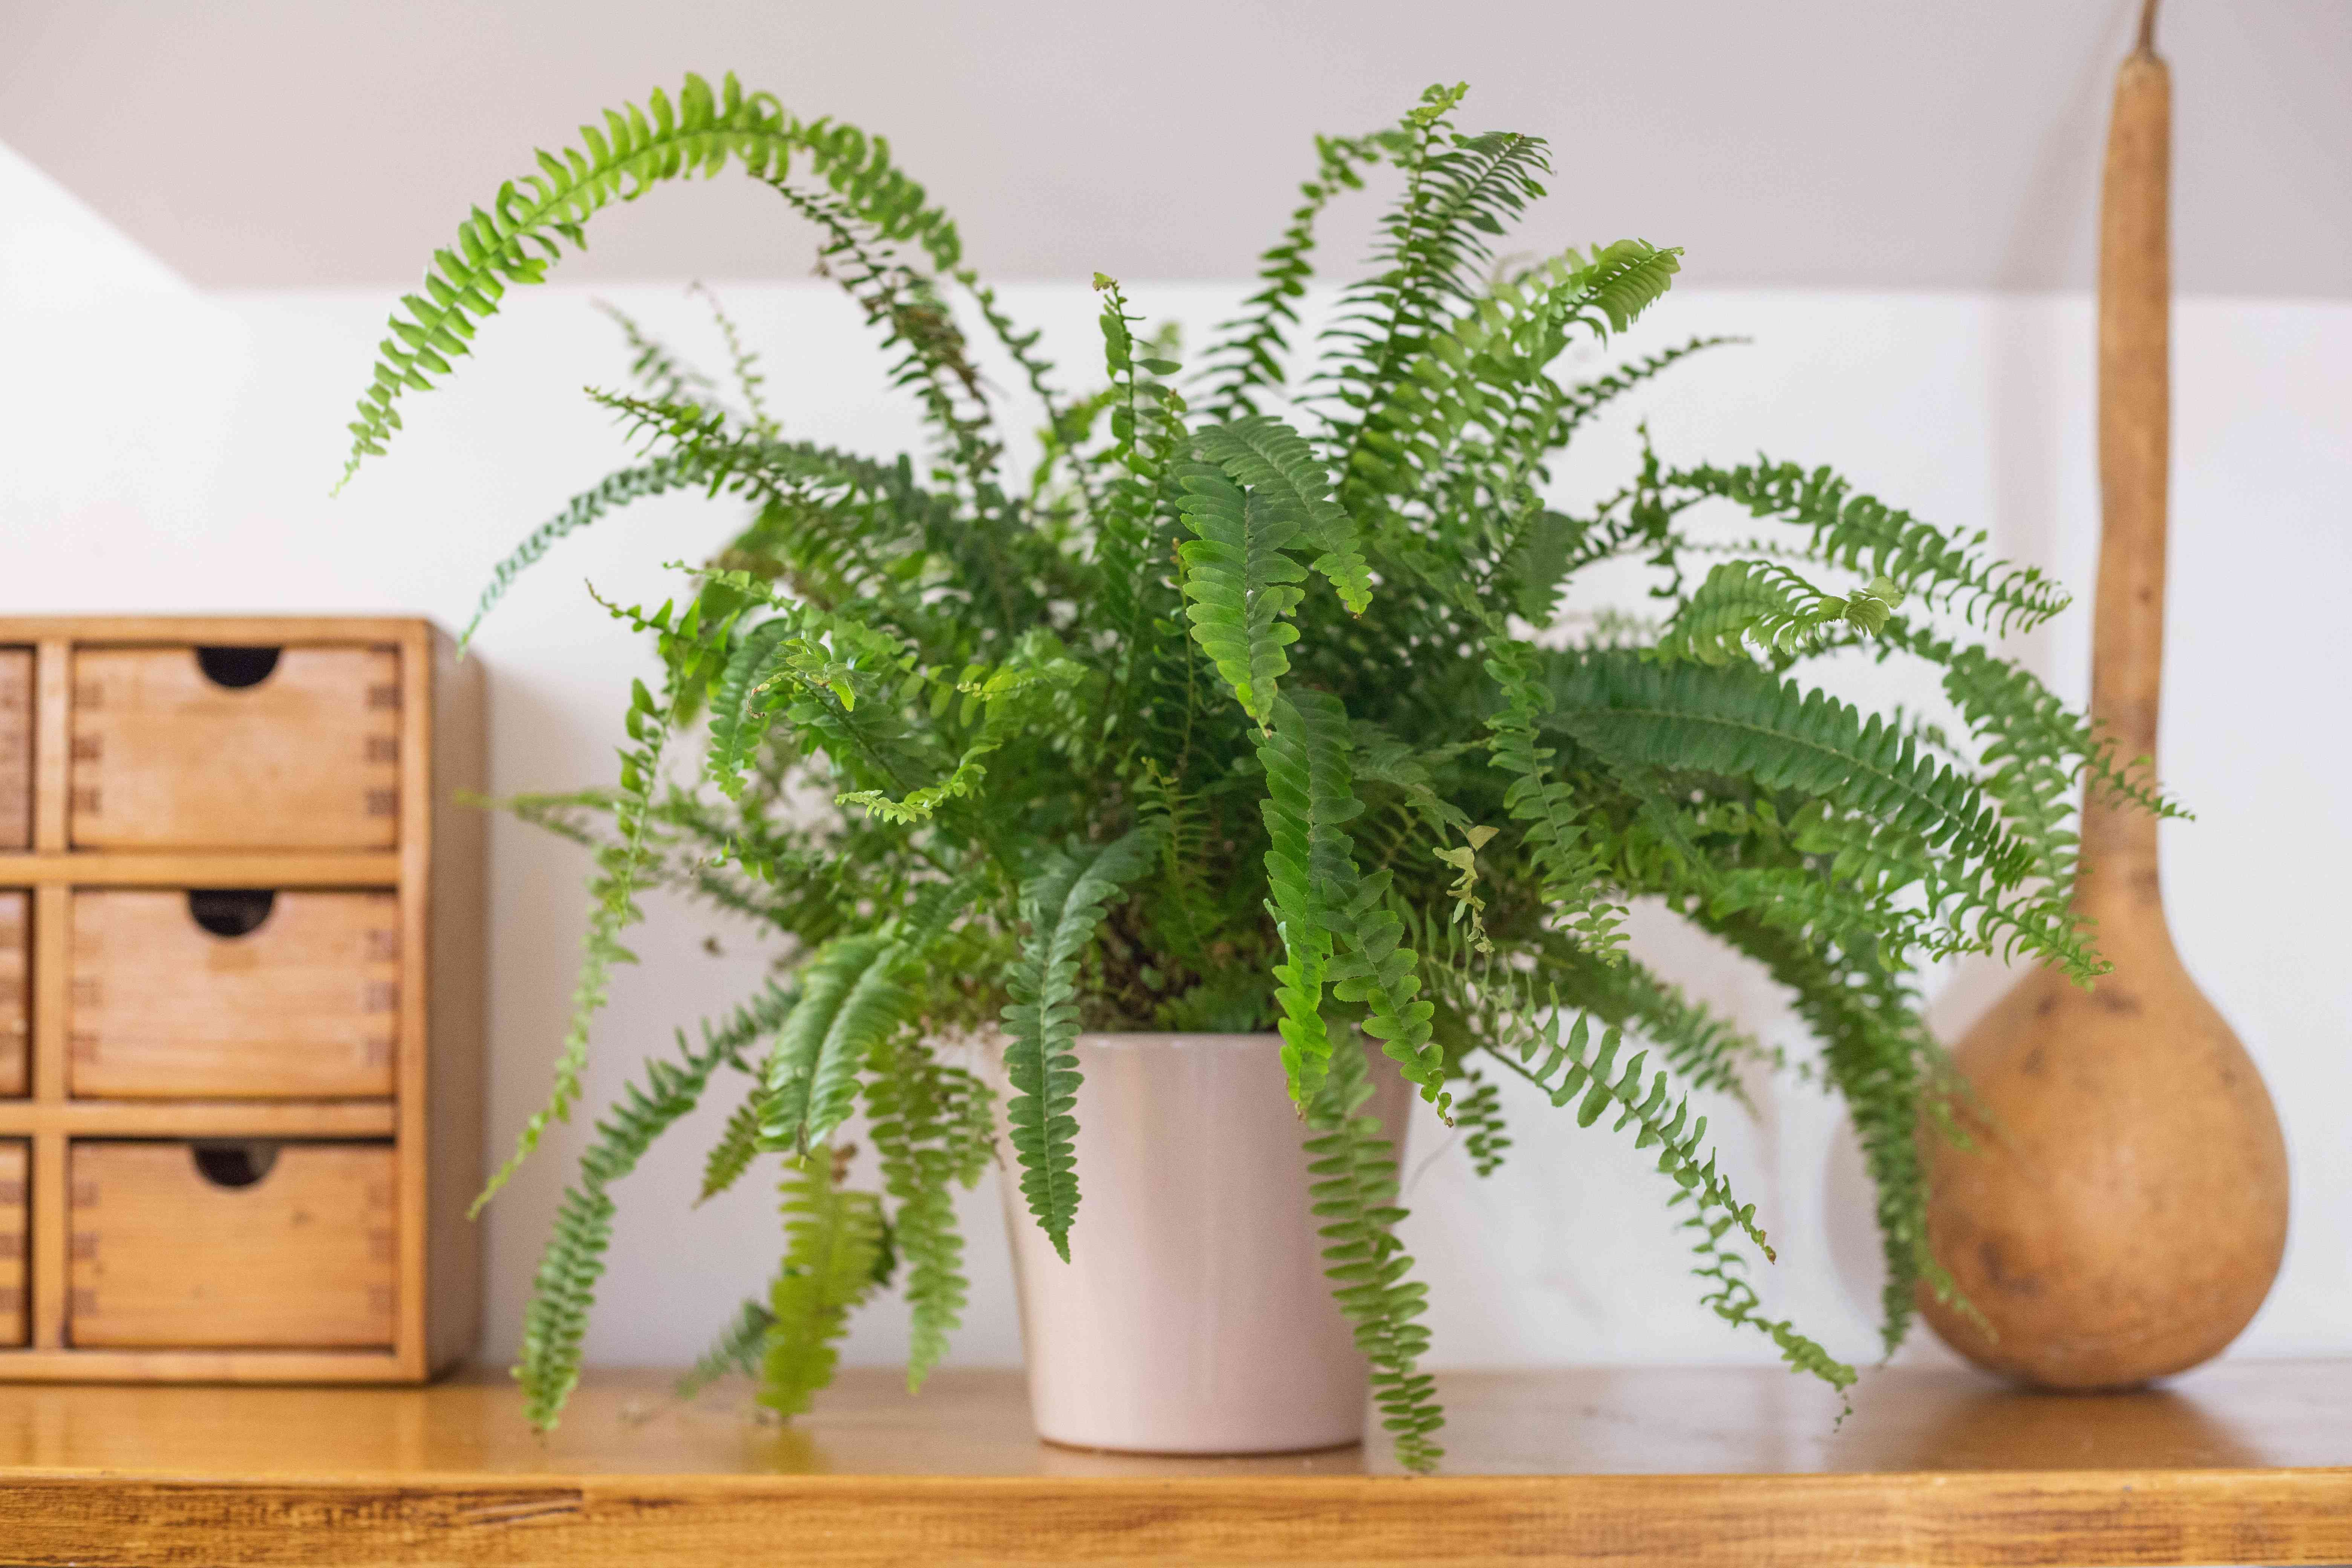 large fern house plant is displayed on wooden shelf next to other house decor